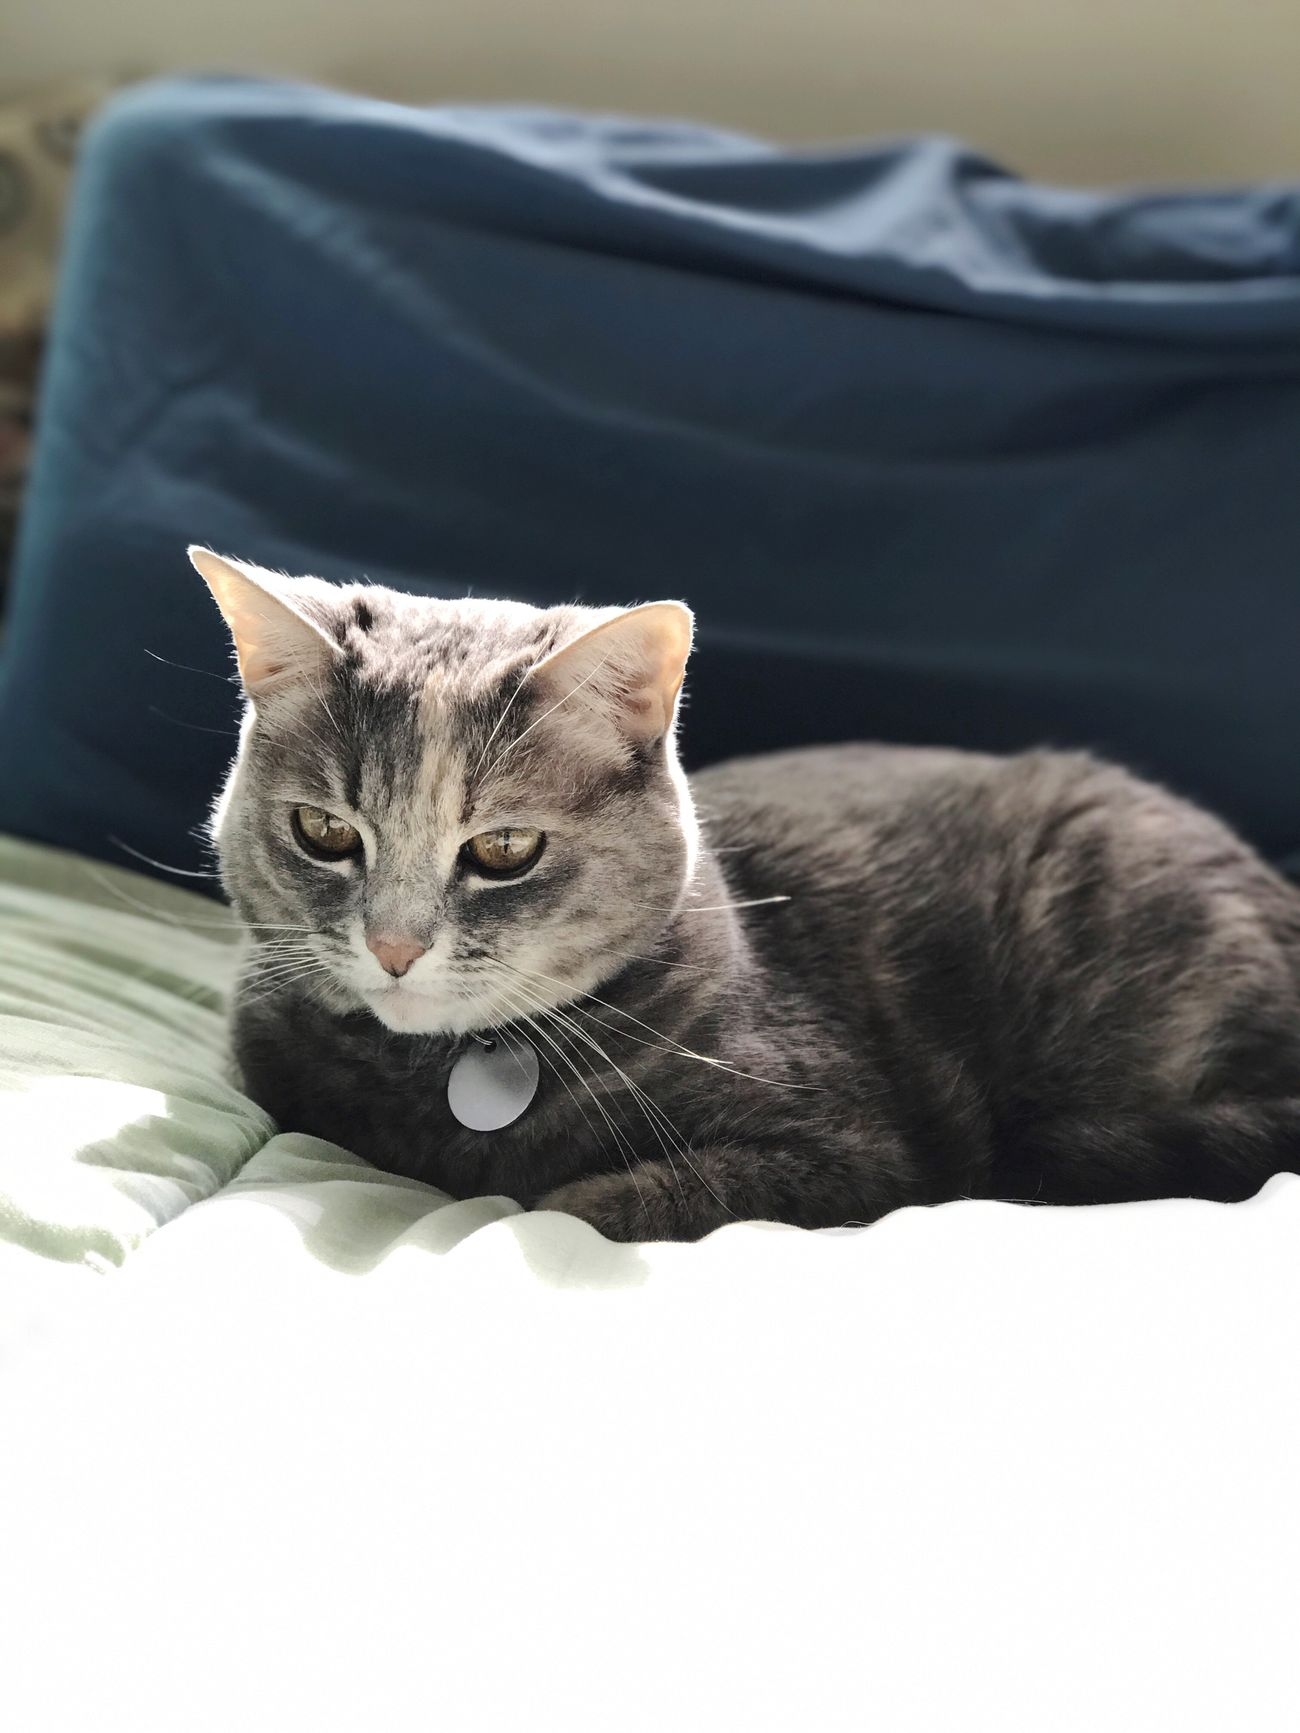 Pets One Animal Domestic Cat Domestic Animals Animal Themes Mammal Feline Whisker No People Indoors  Close-up Day Cat On Bed Bedroom Cat Grey Cat